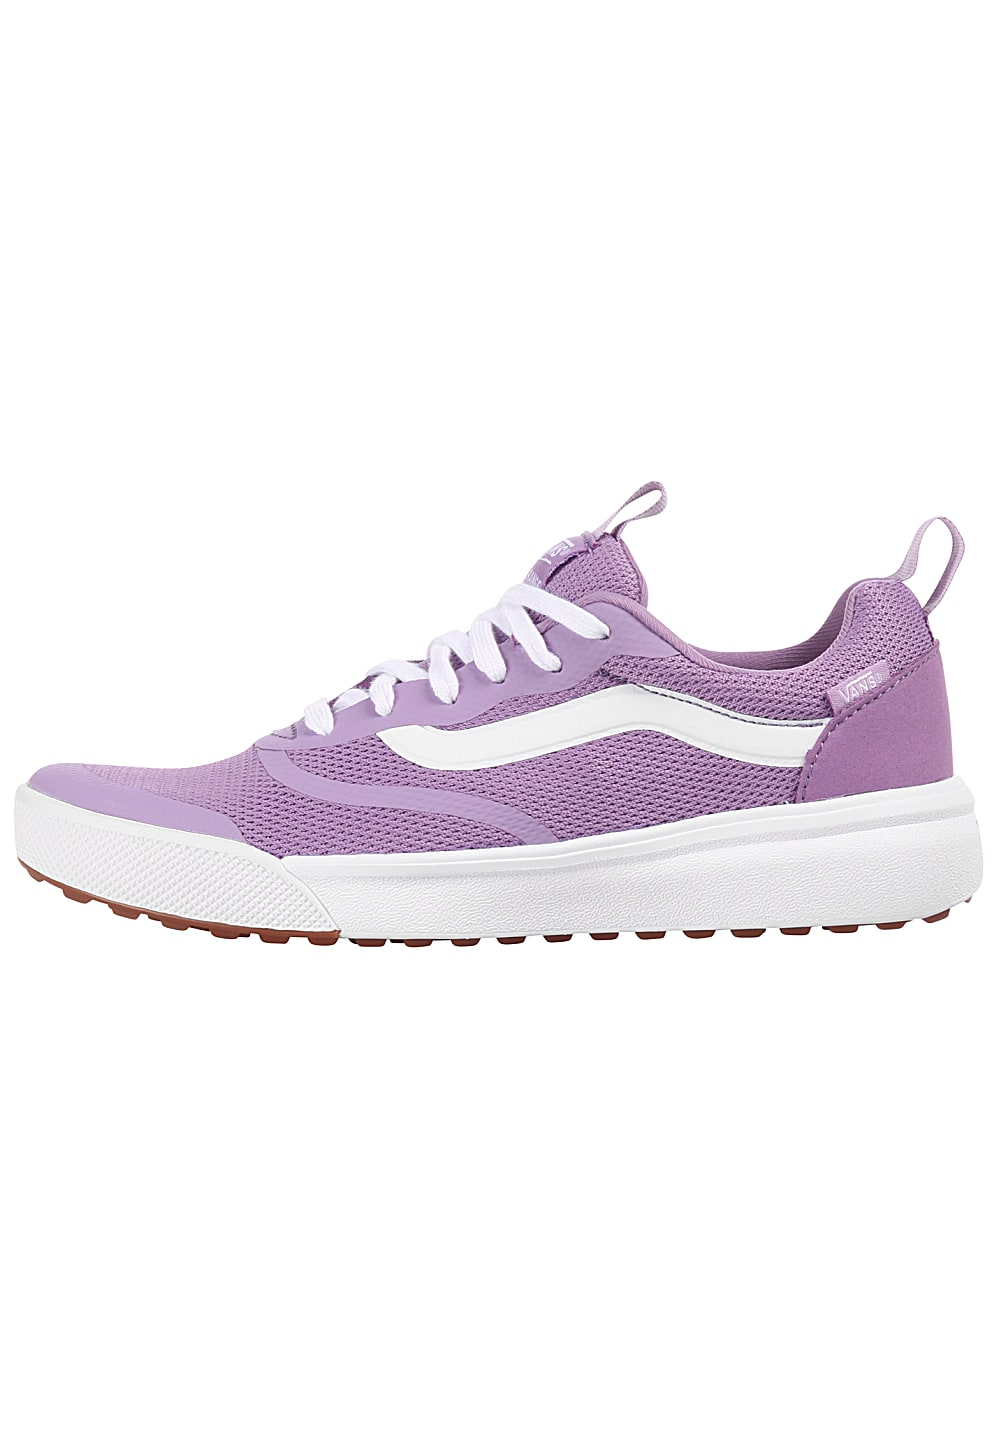 2937da49d52470 Next. -30%. This product is currently out of stock. Vans. Ultrarange  Rapidweld - Sneakers for Women